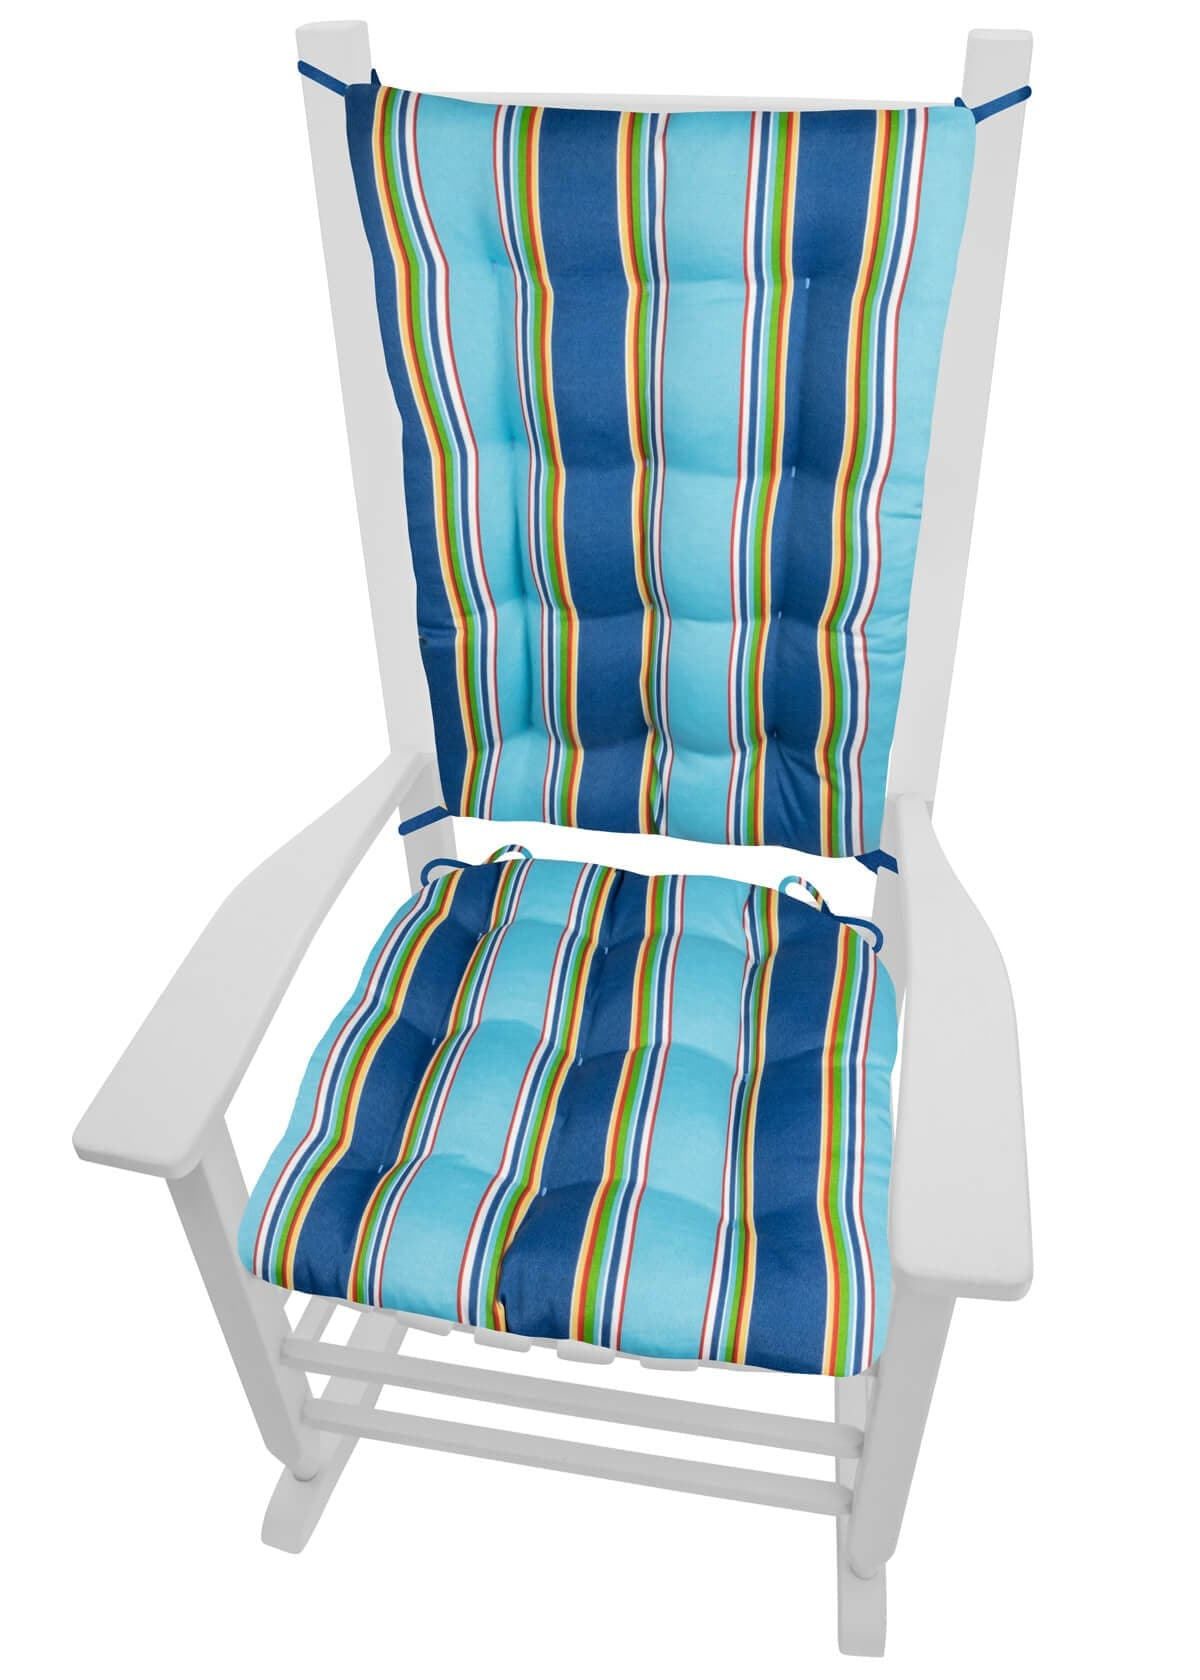 Westport Cobalt Stripe Indoor/Outdoor Rocking Chair Cushions - Barnett Home Decor - Blue